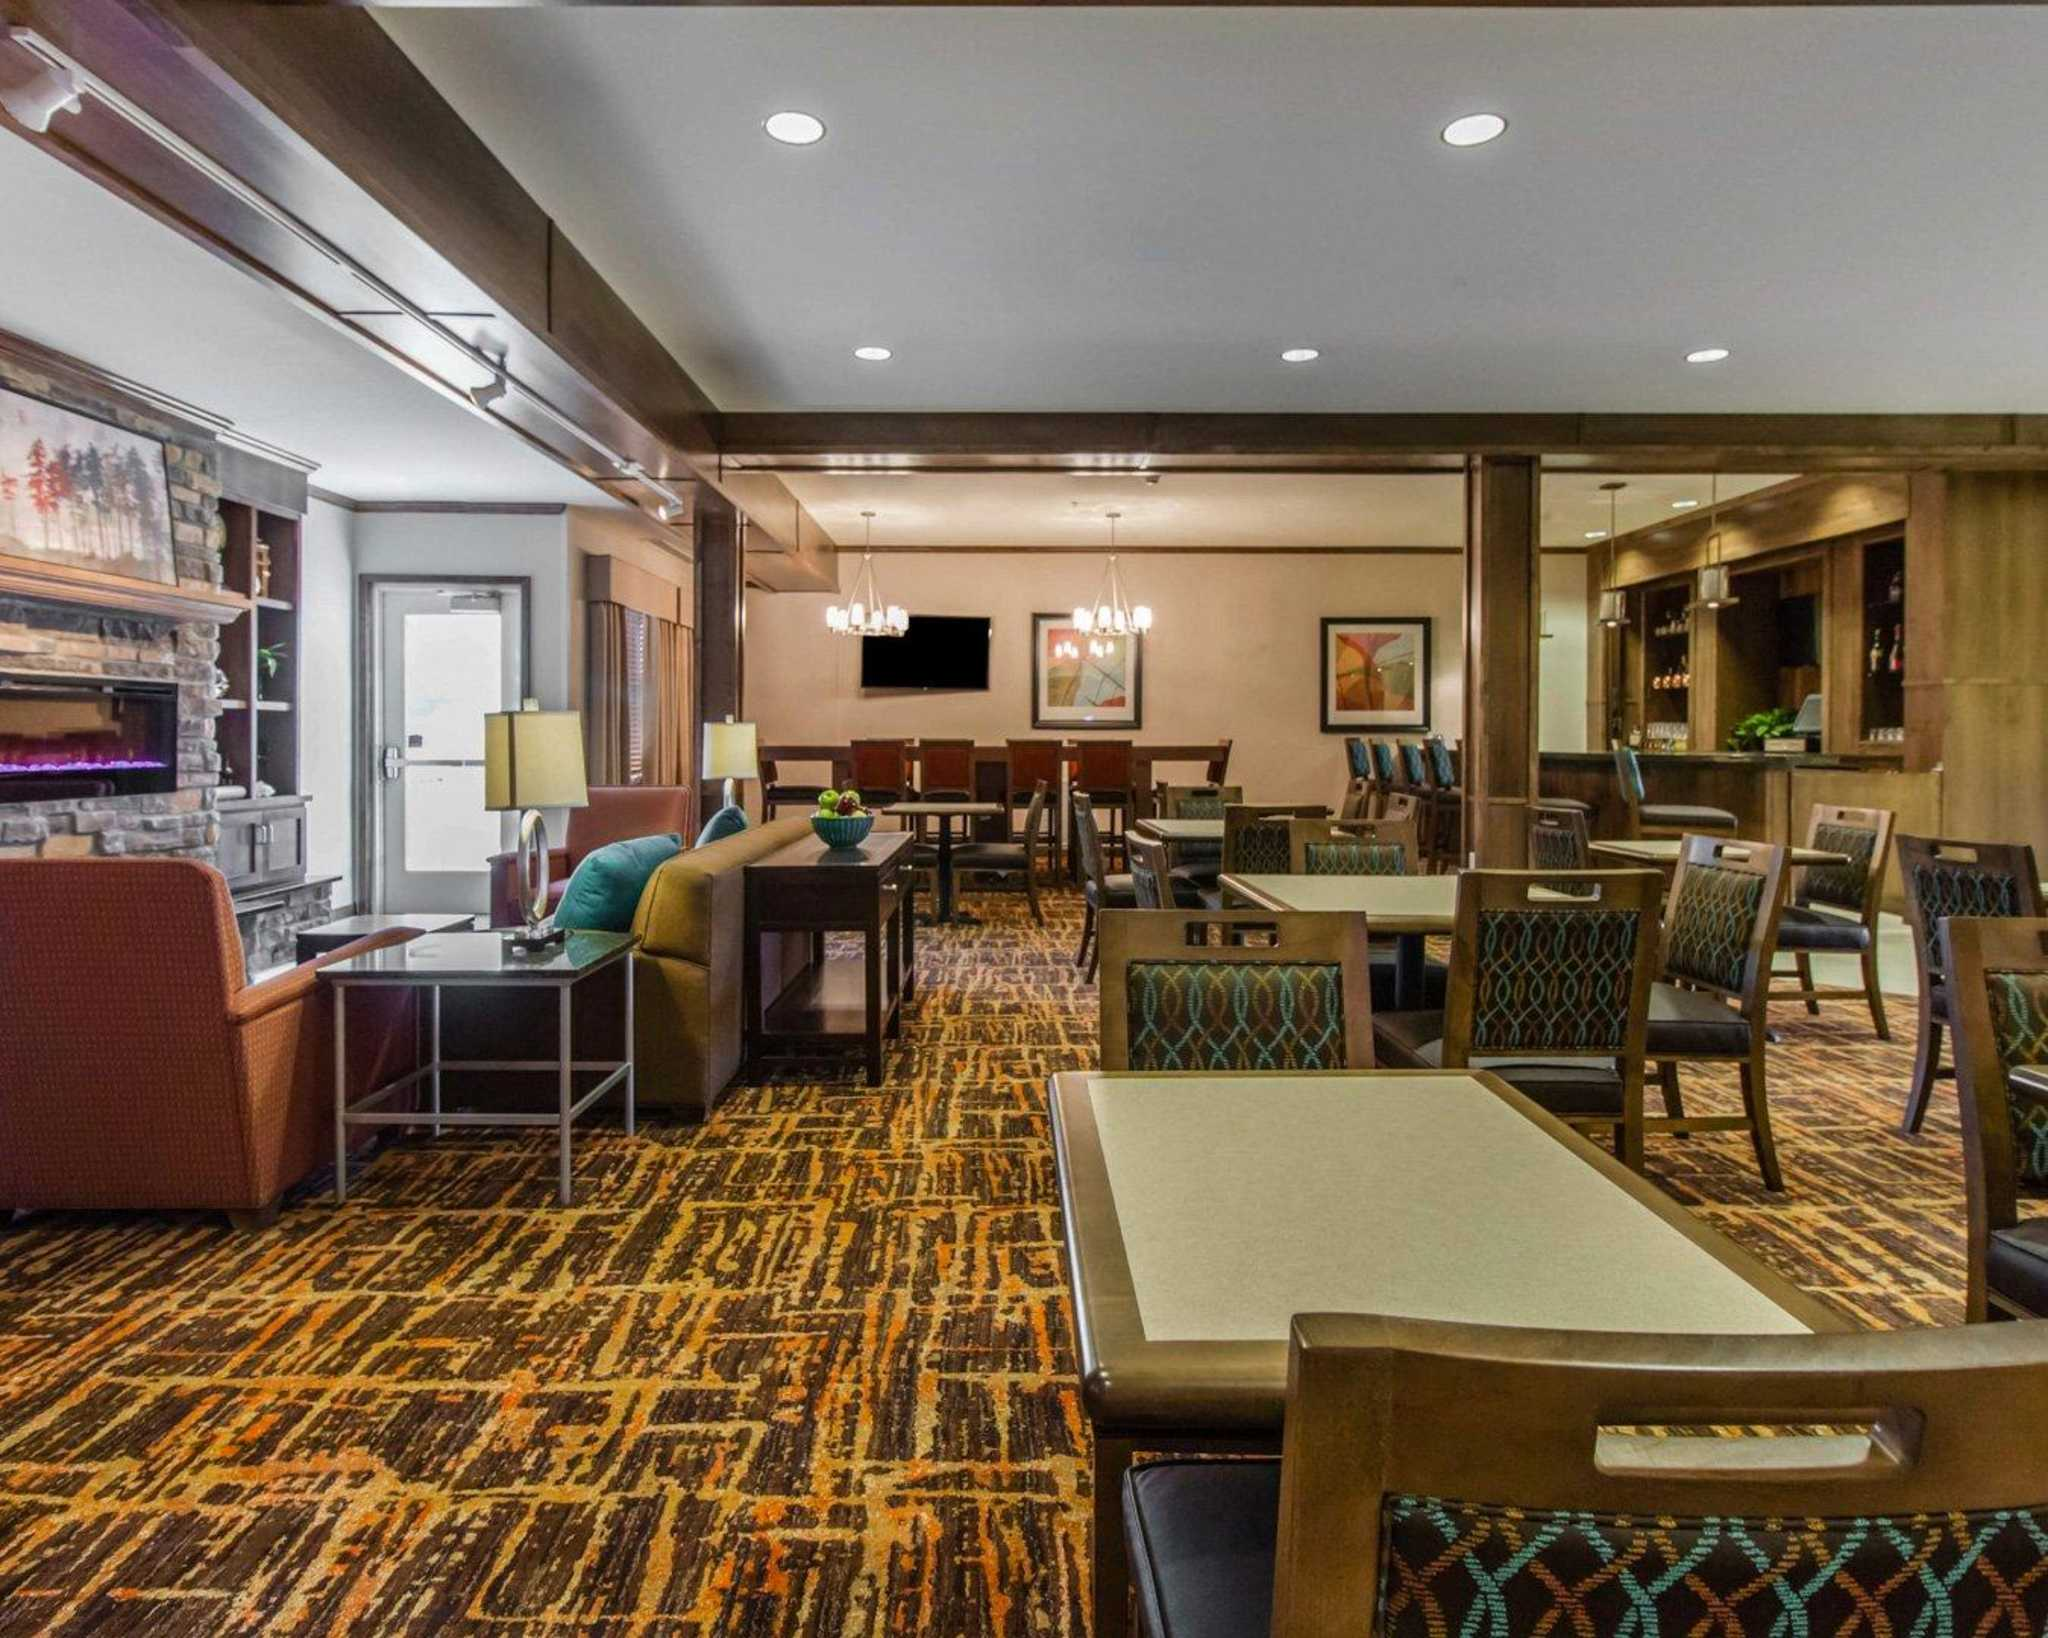 MainStay Suites Event Center image 6